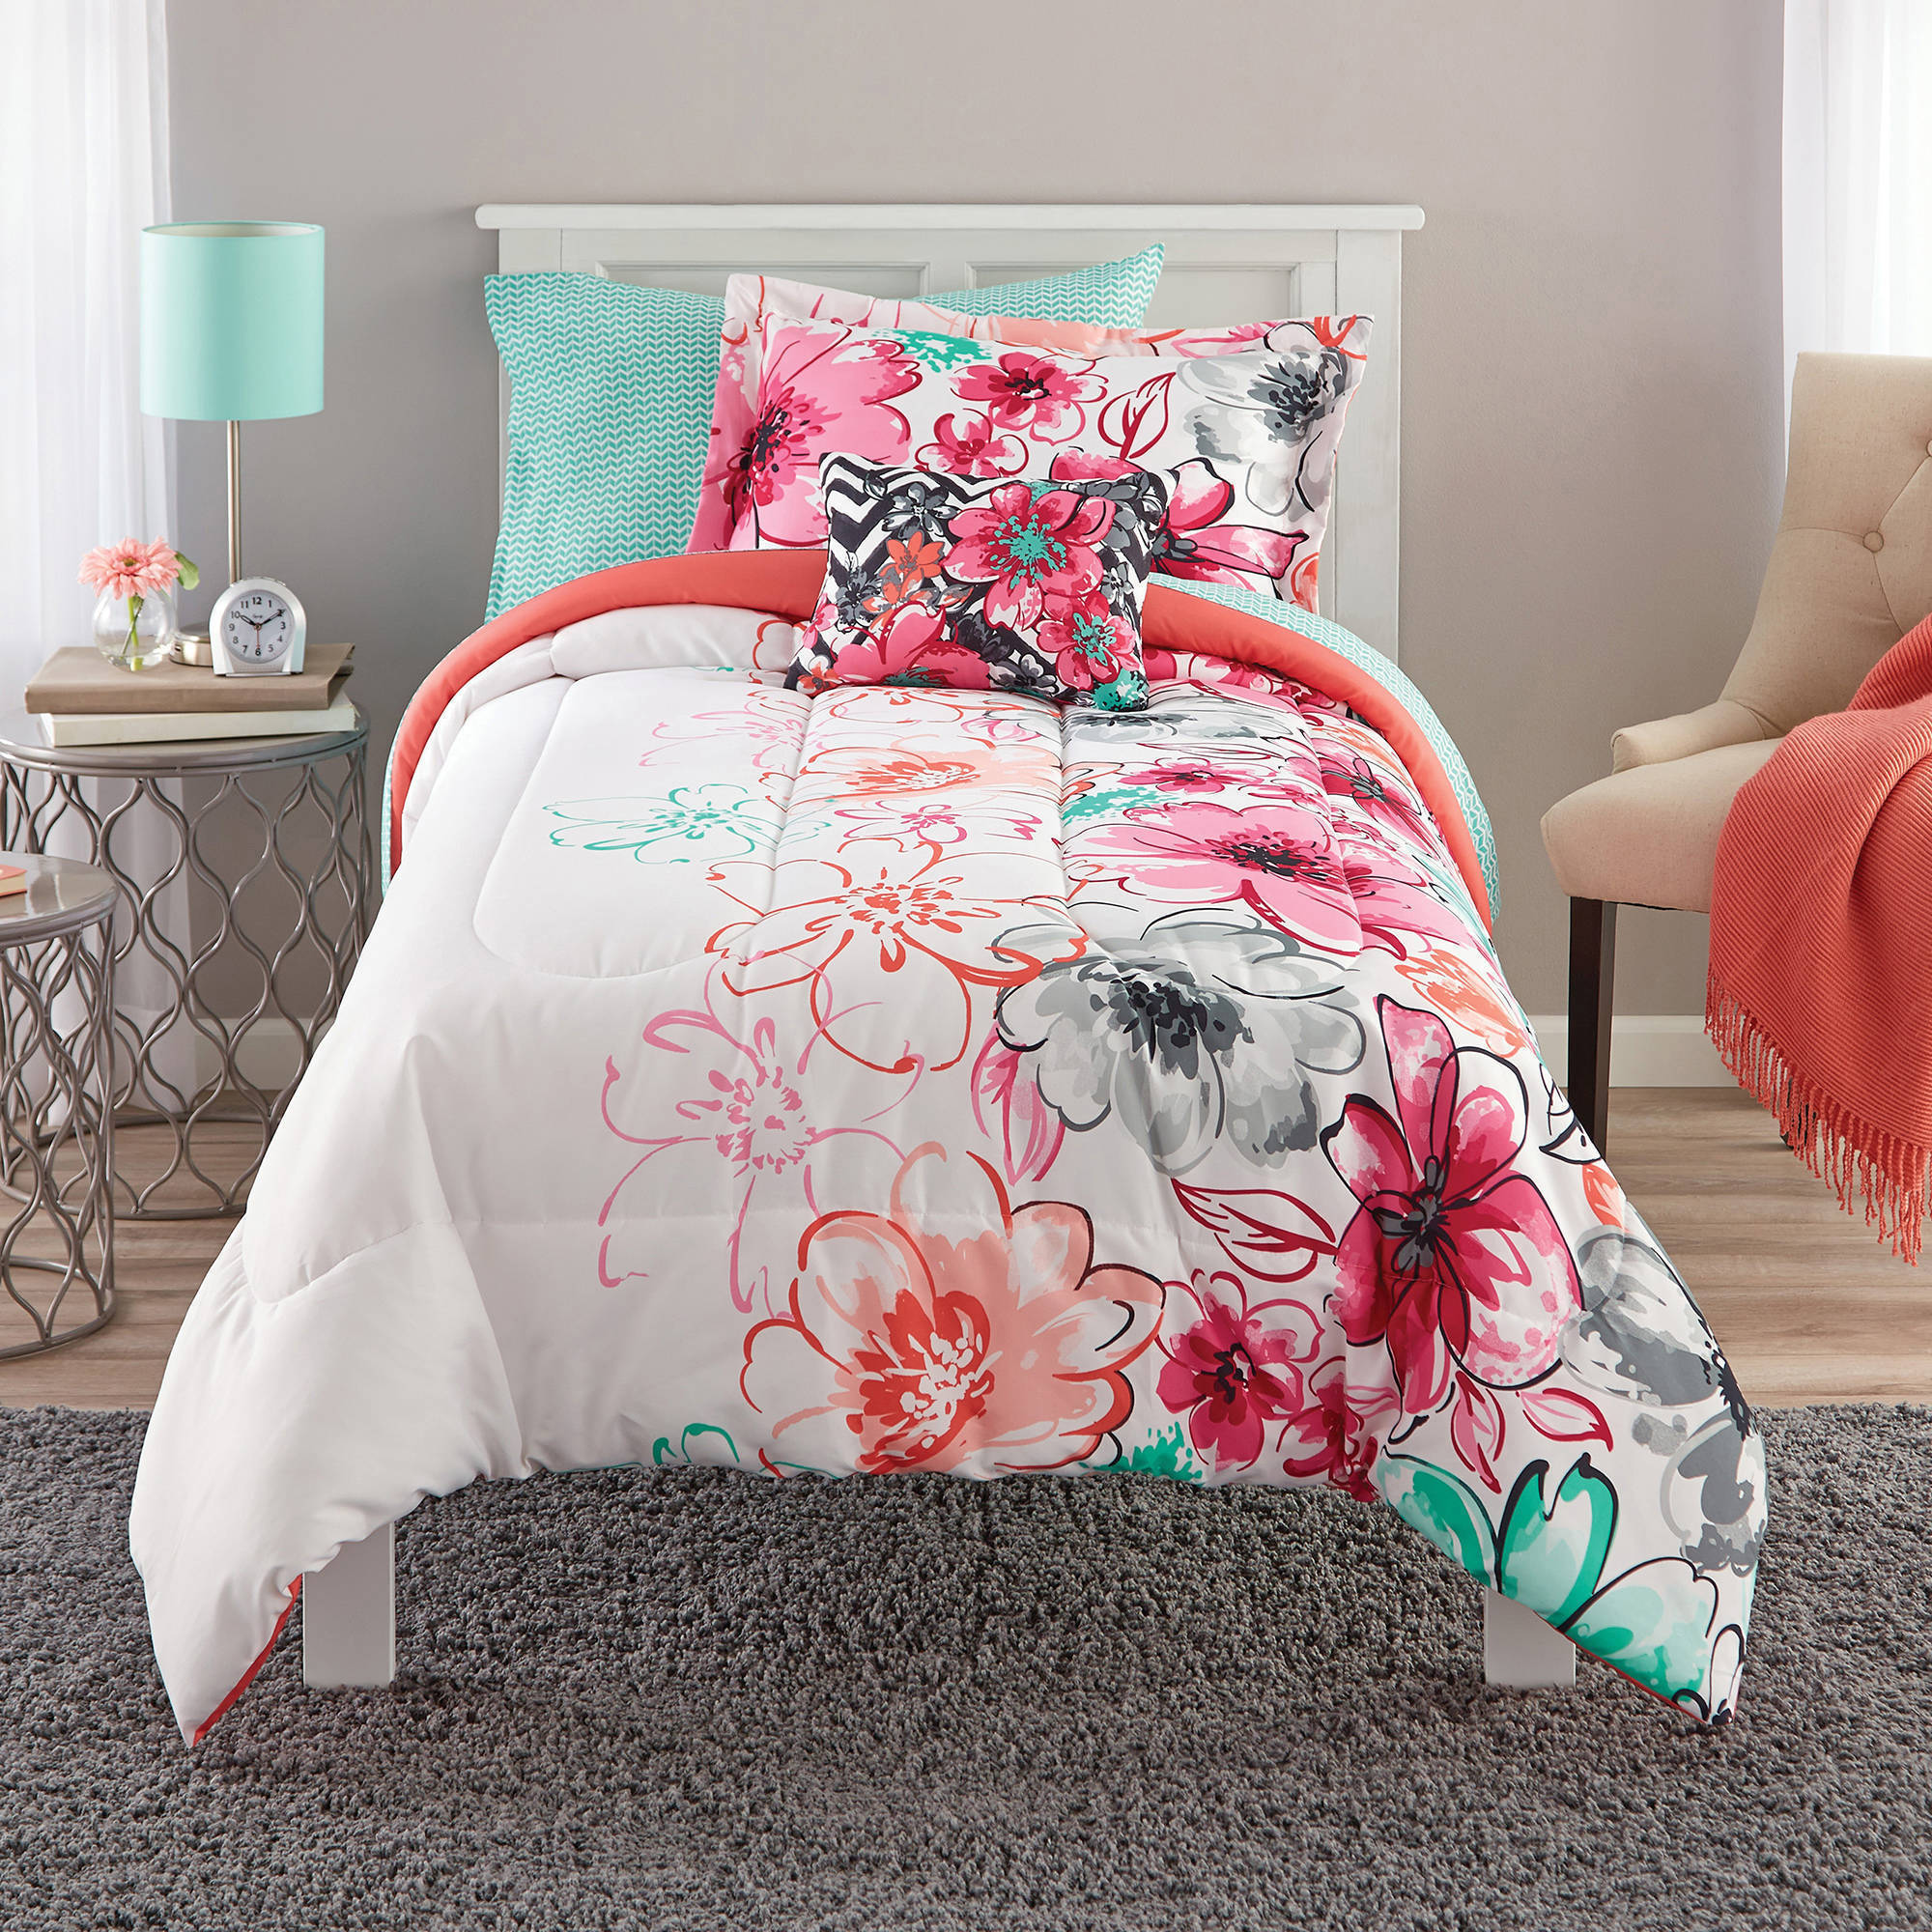 Mainstays Watercolor Floral Coordinated Bedding Comforter Set